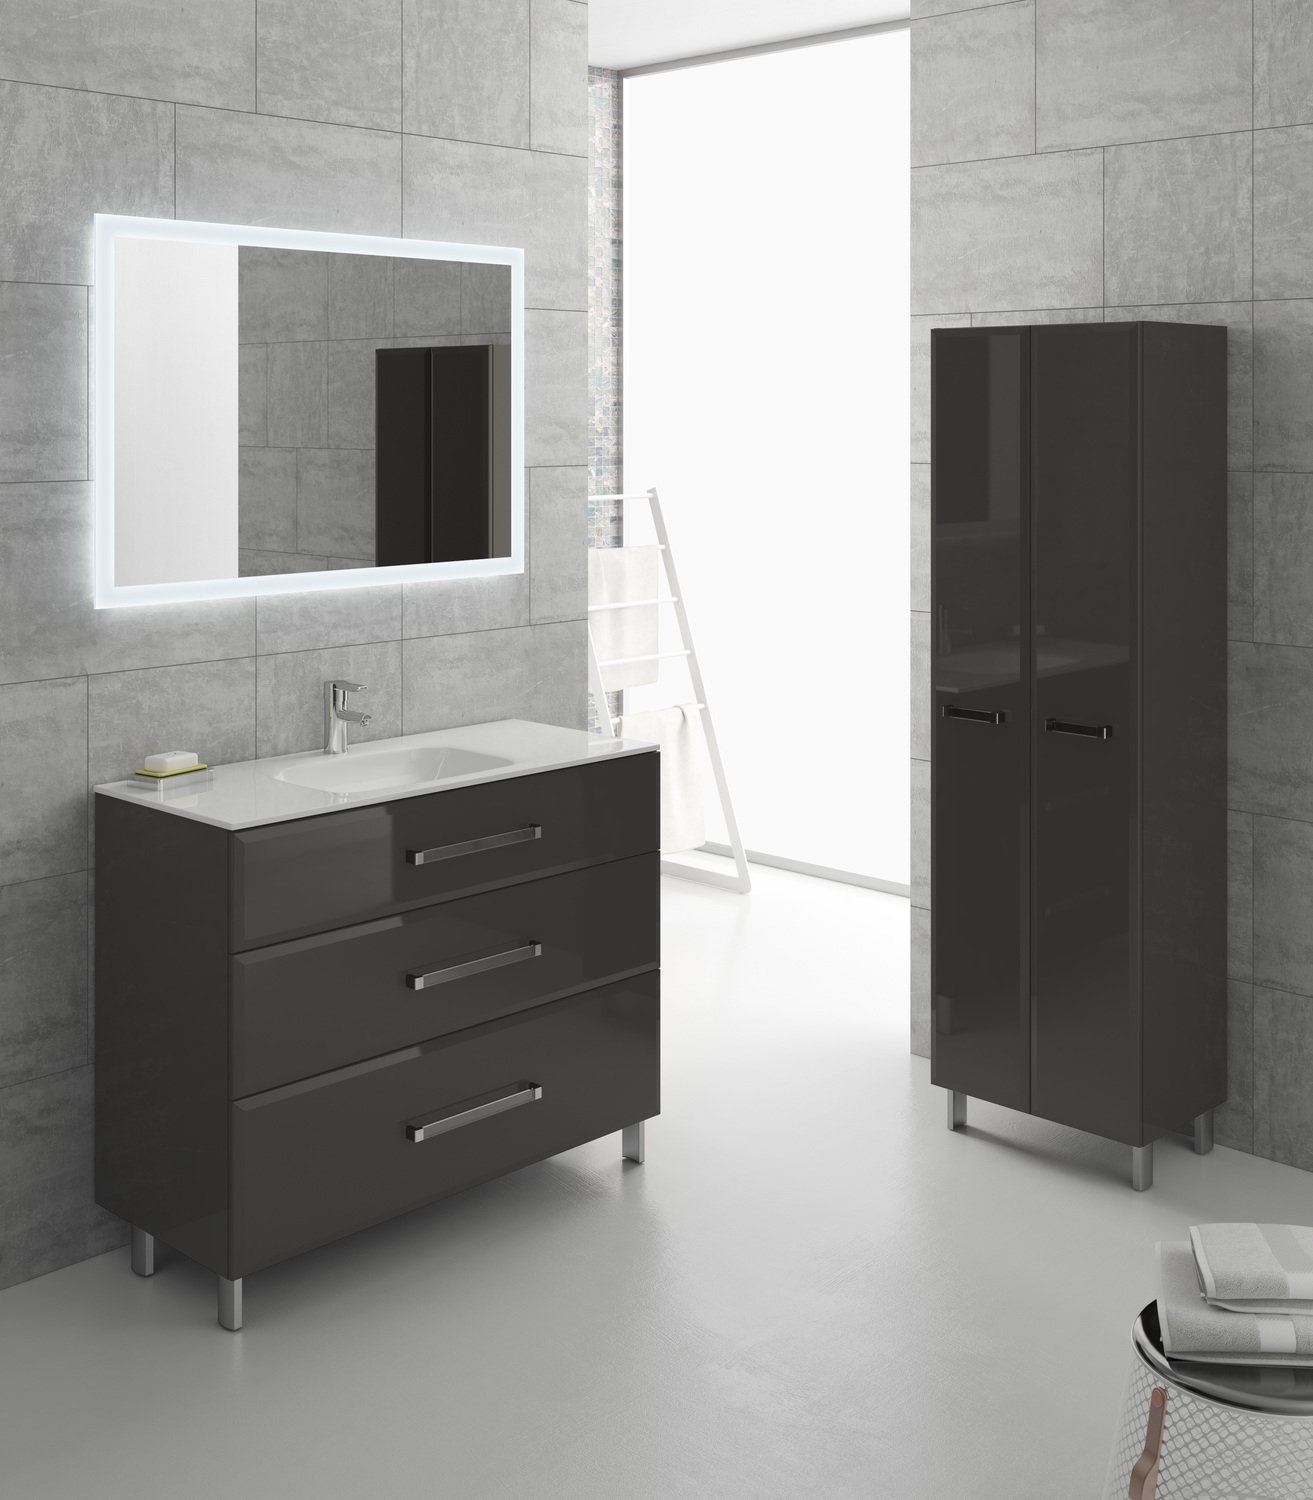 ensemble de meubles de salle de bains gris fonc leroy merlin. Black Bedroom Furniture Sets. Home Design Ideas